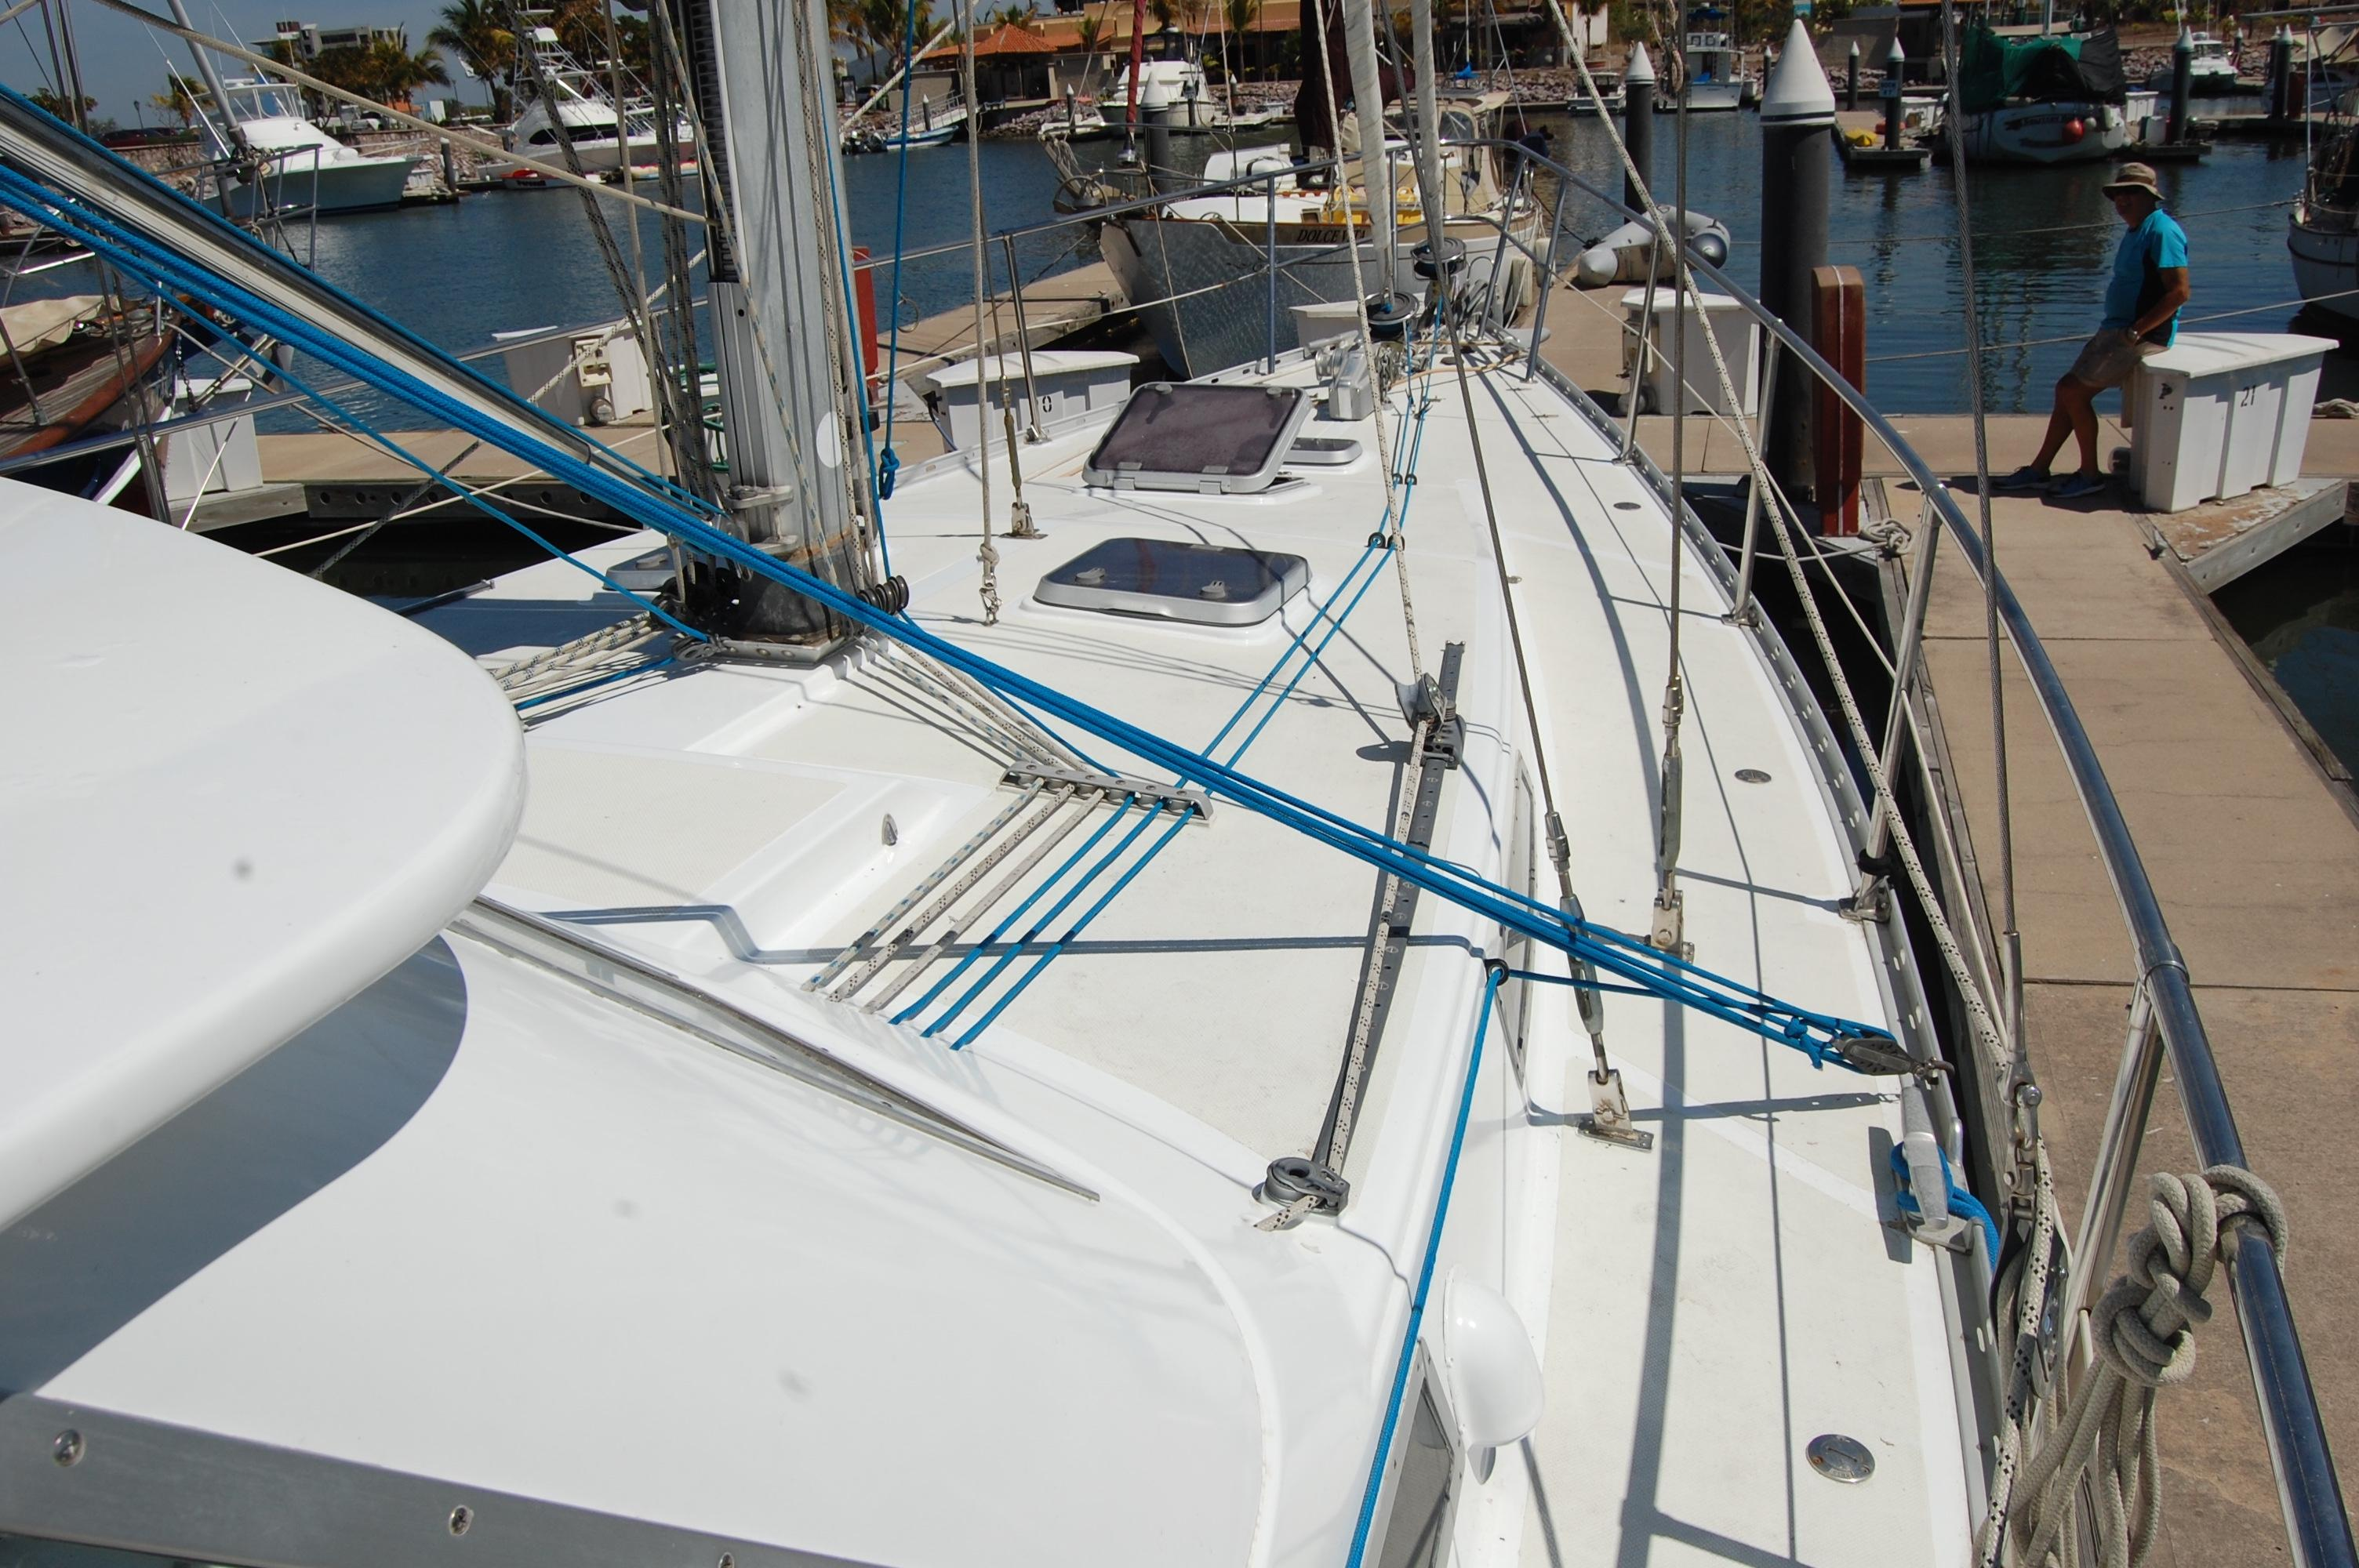 46' Maple Leaf Queen Cutter+Photo 52